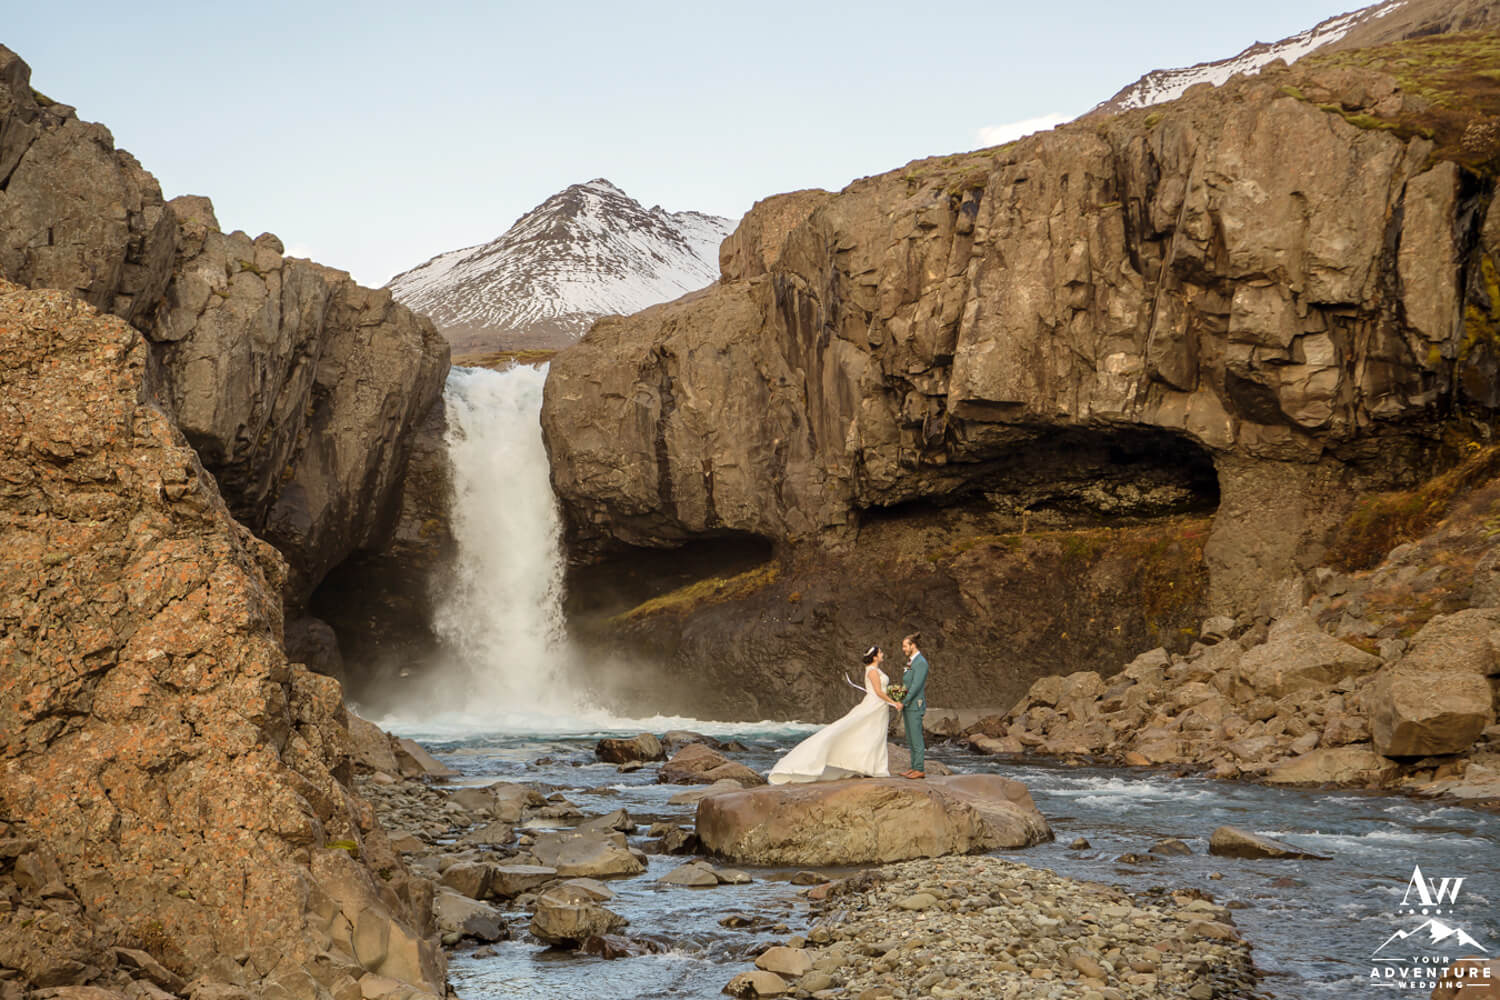 Adventurous Iceland Hiking Elopement Couple at Waterfall